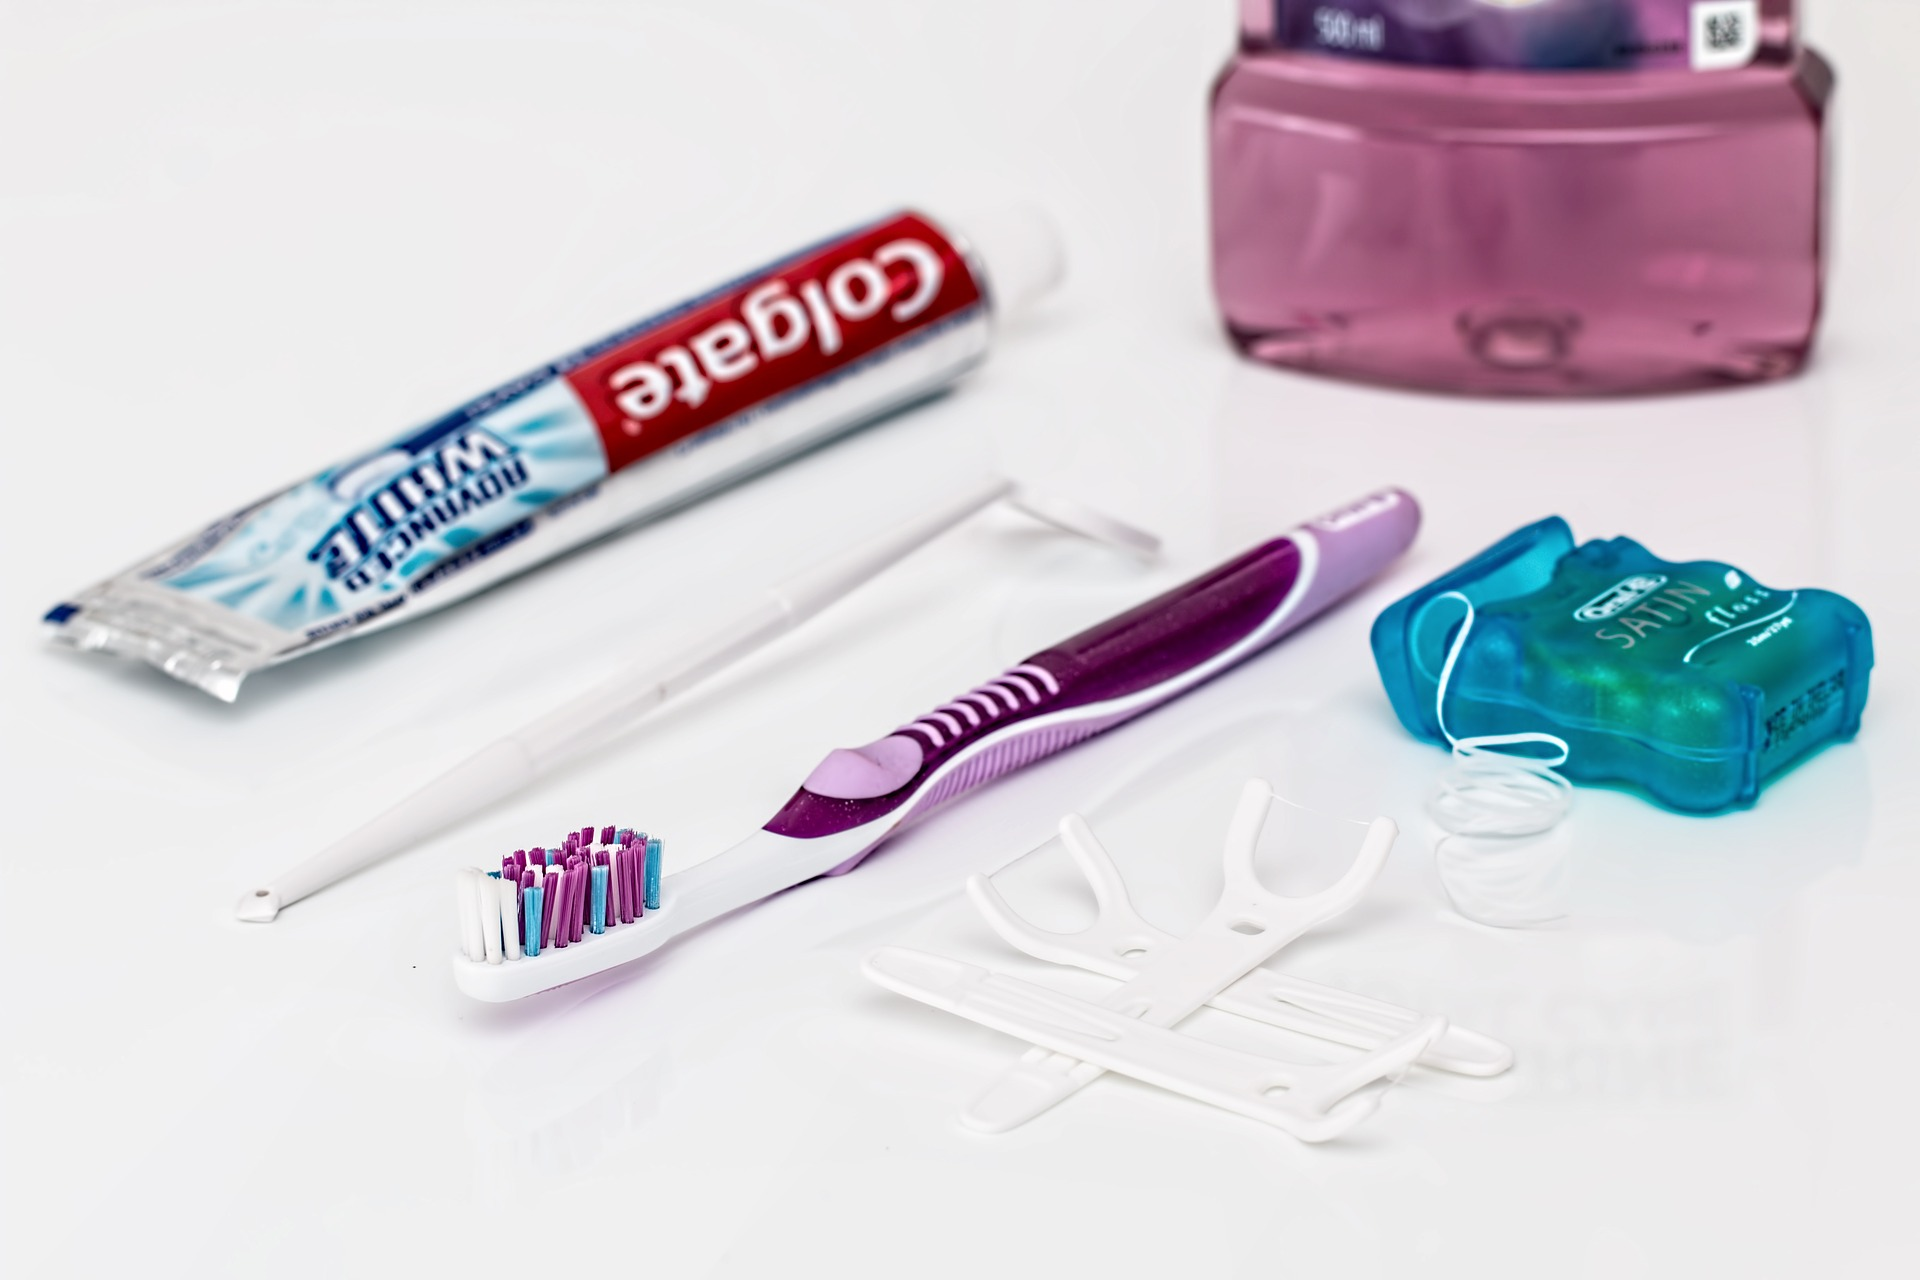 dental care tools - benefits of flossing